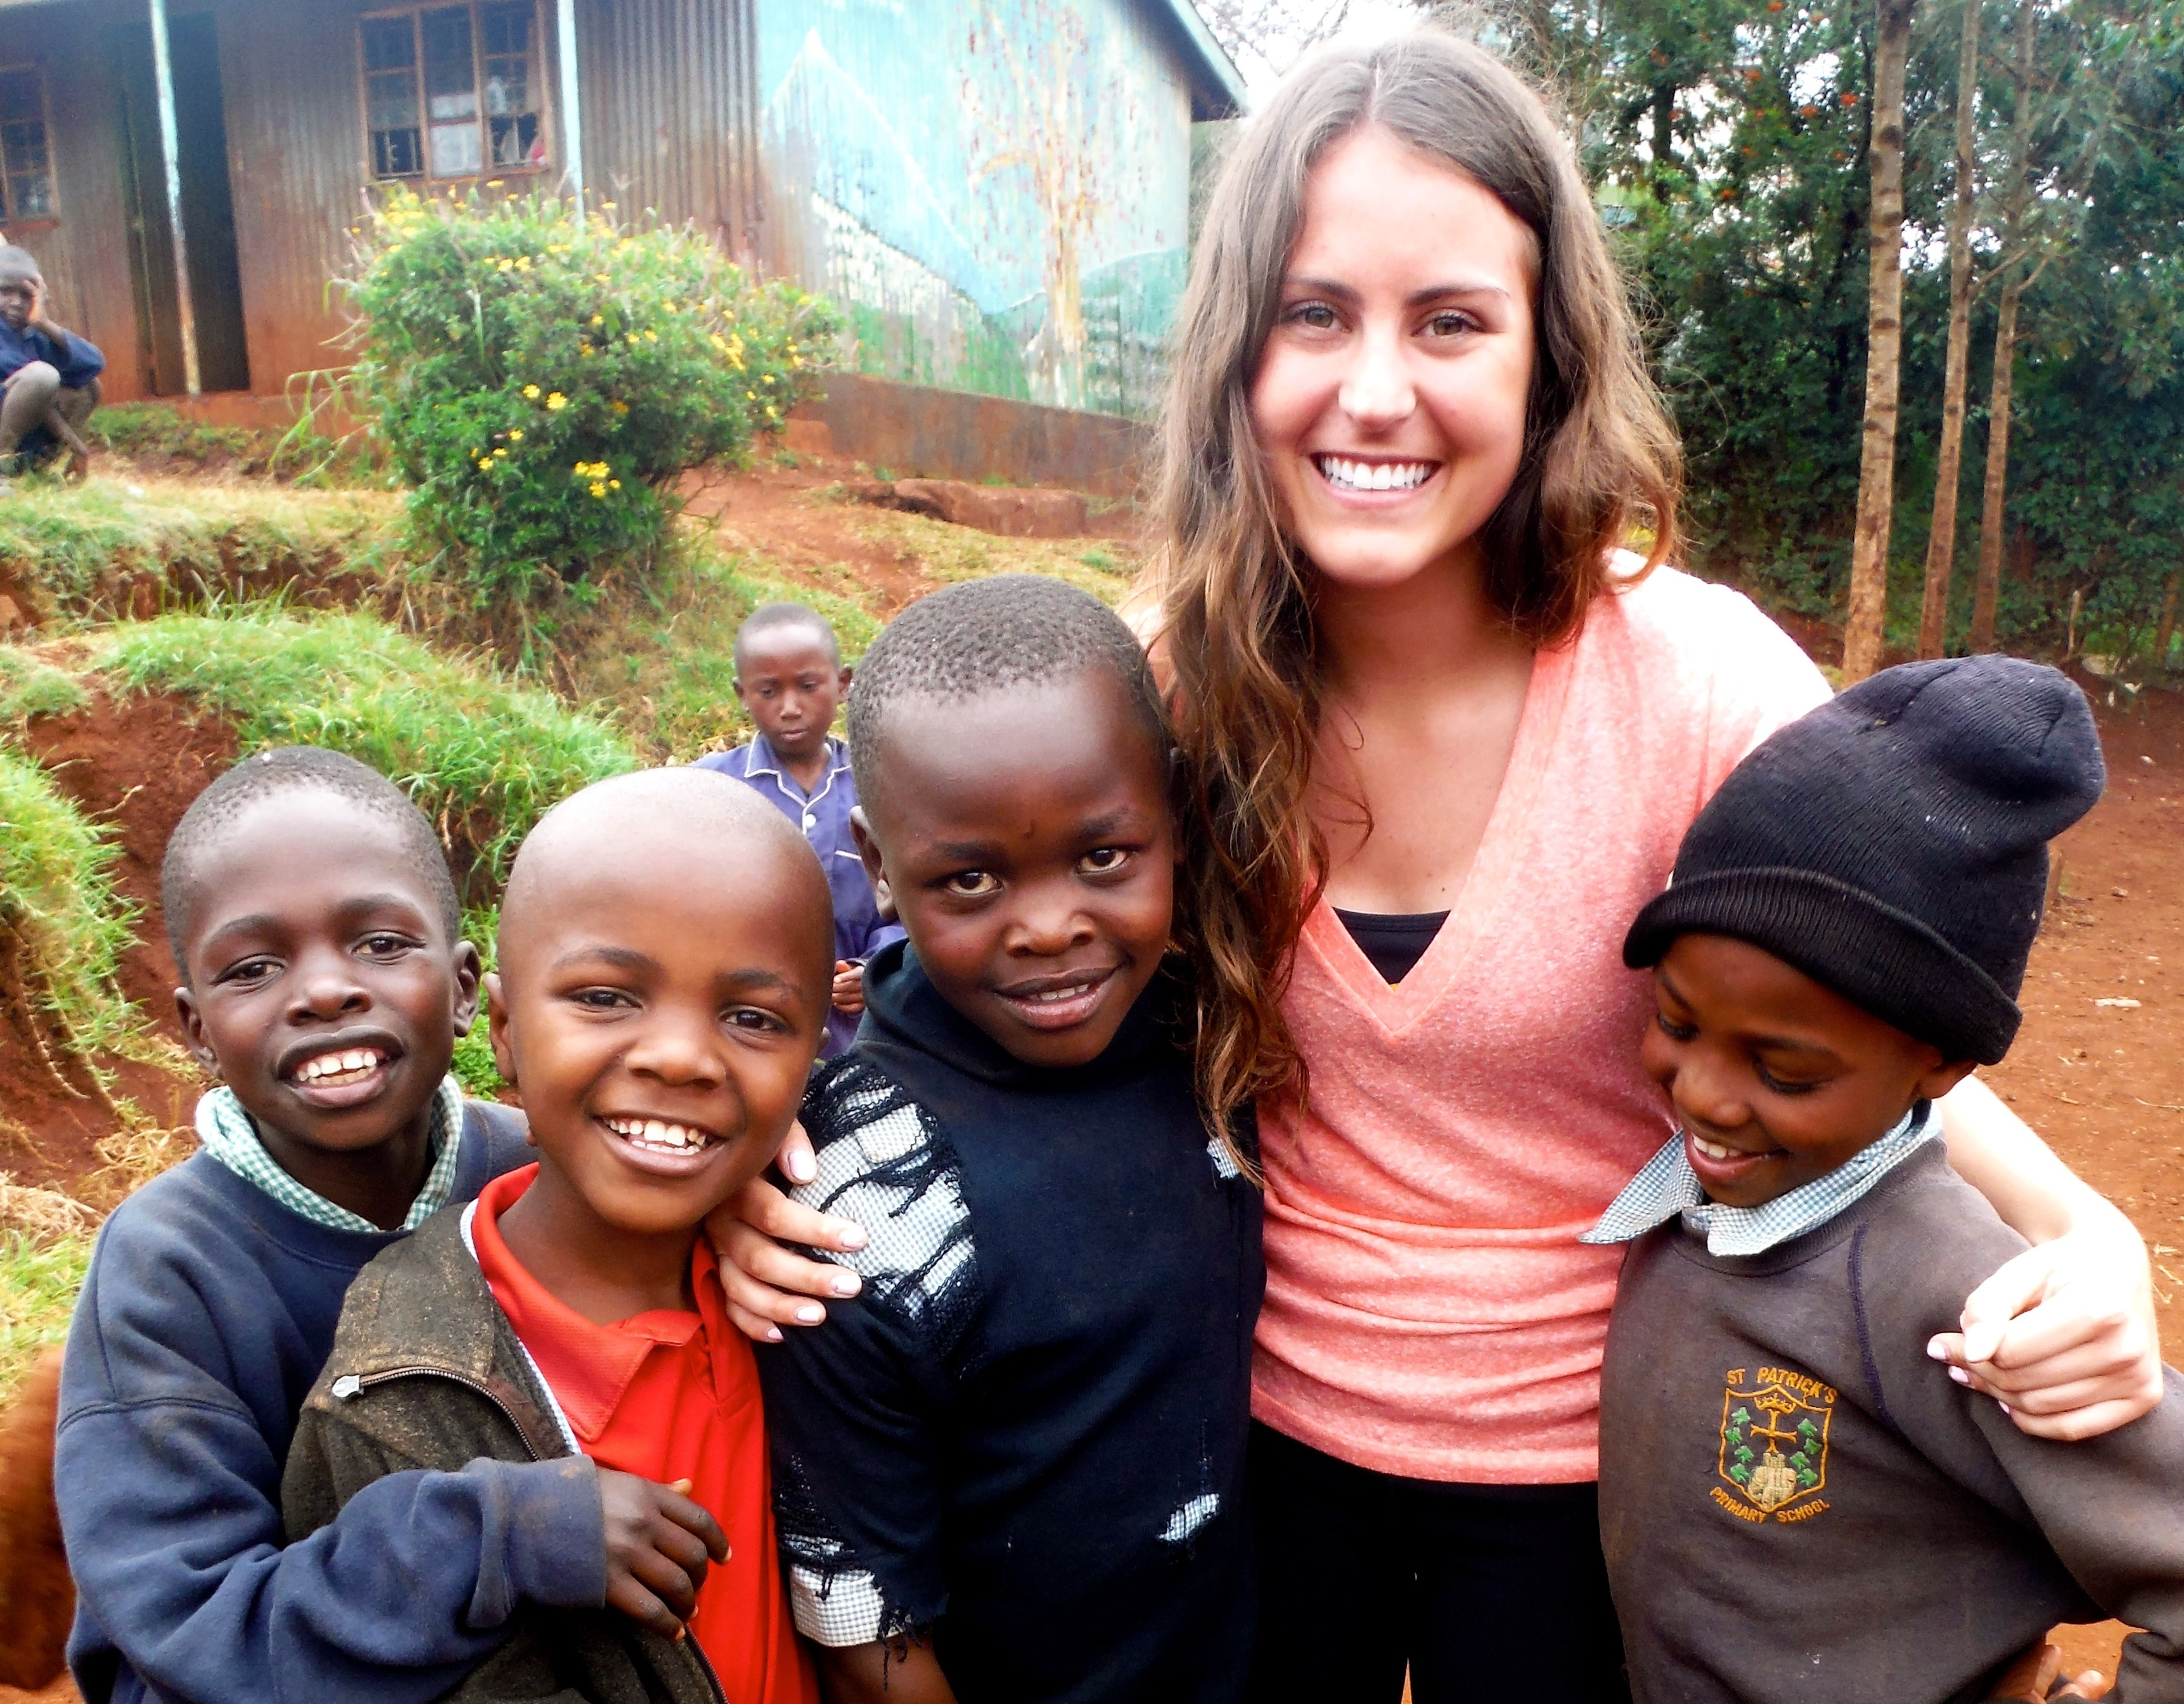 Gap Year Program - Love Volunteers - Make a REAL difference abroad!  6